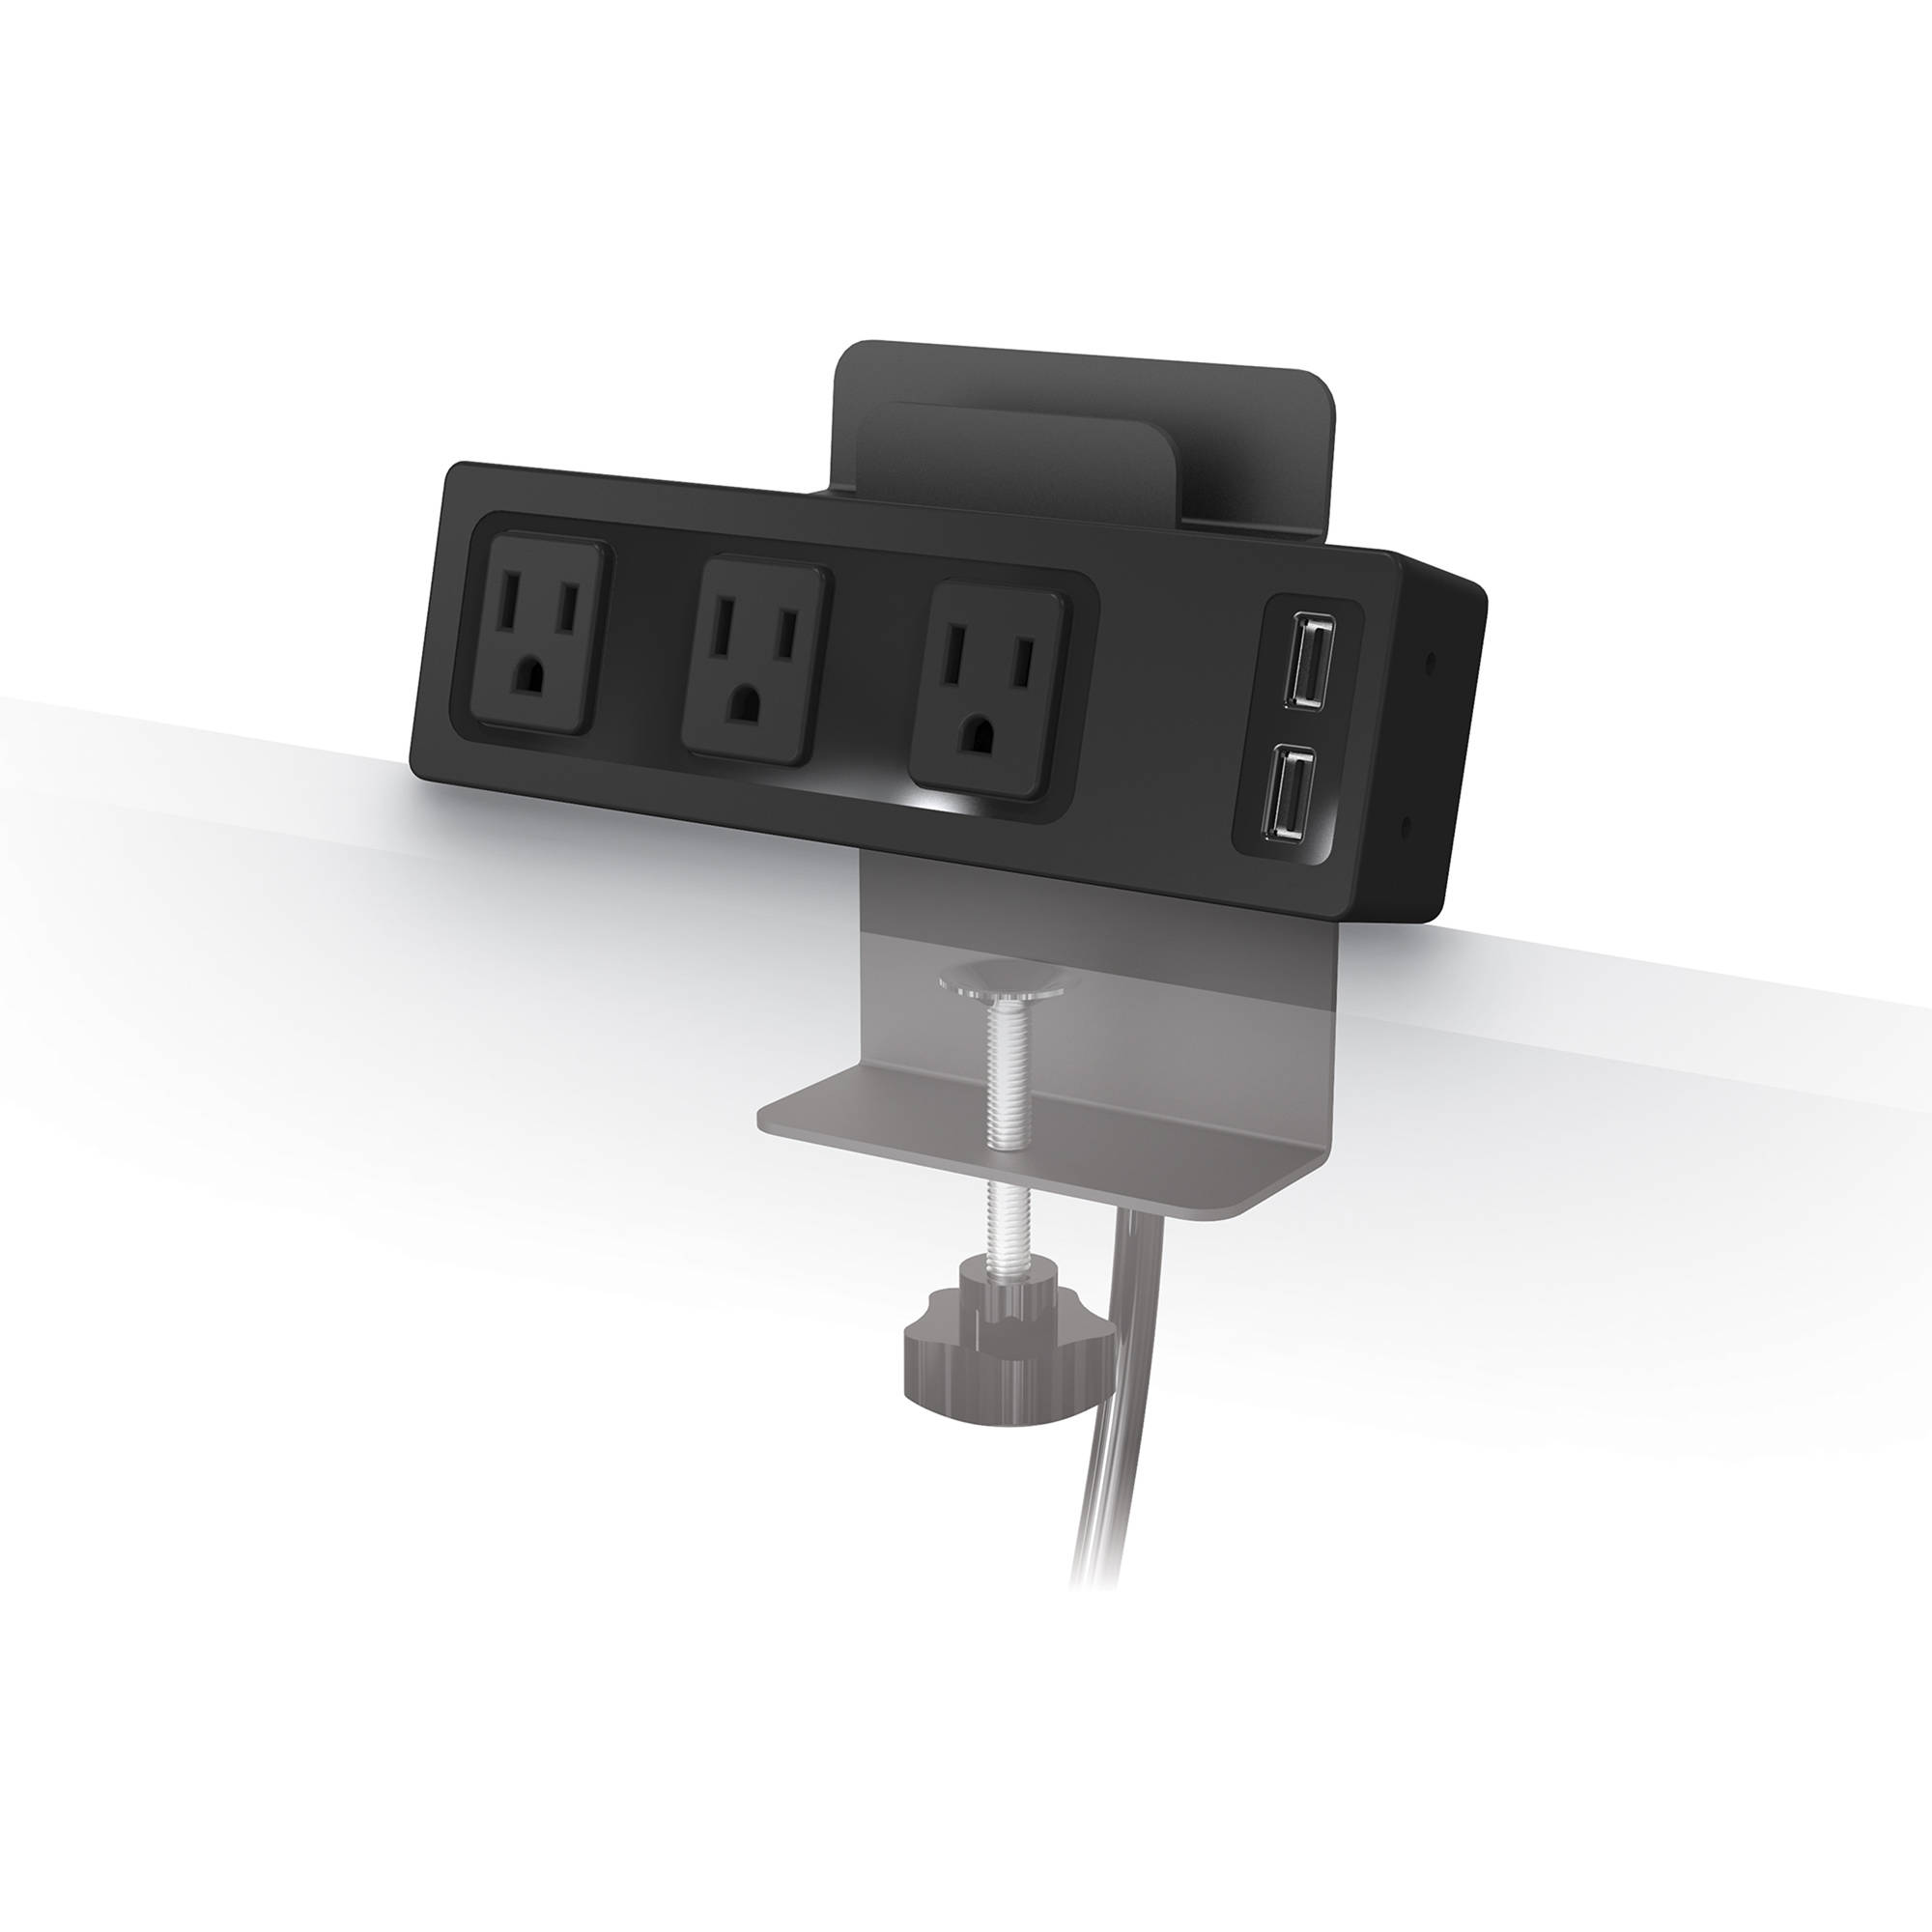 Balt Clamp Mount Usb Charger With 3 Ac S And 2 Ports